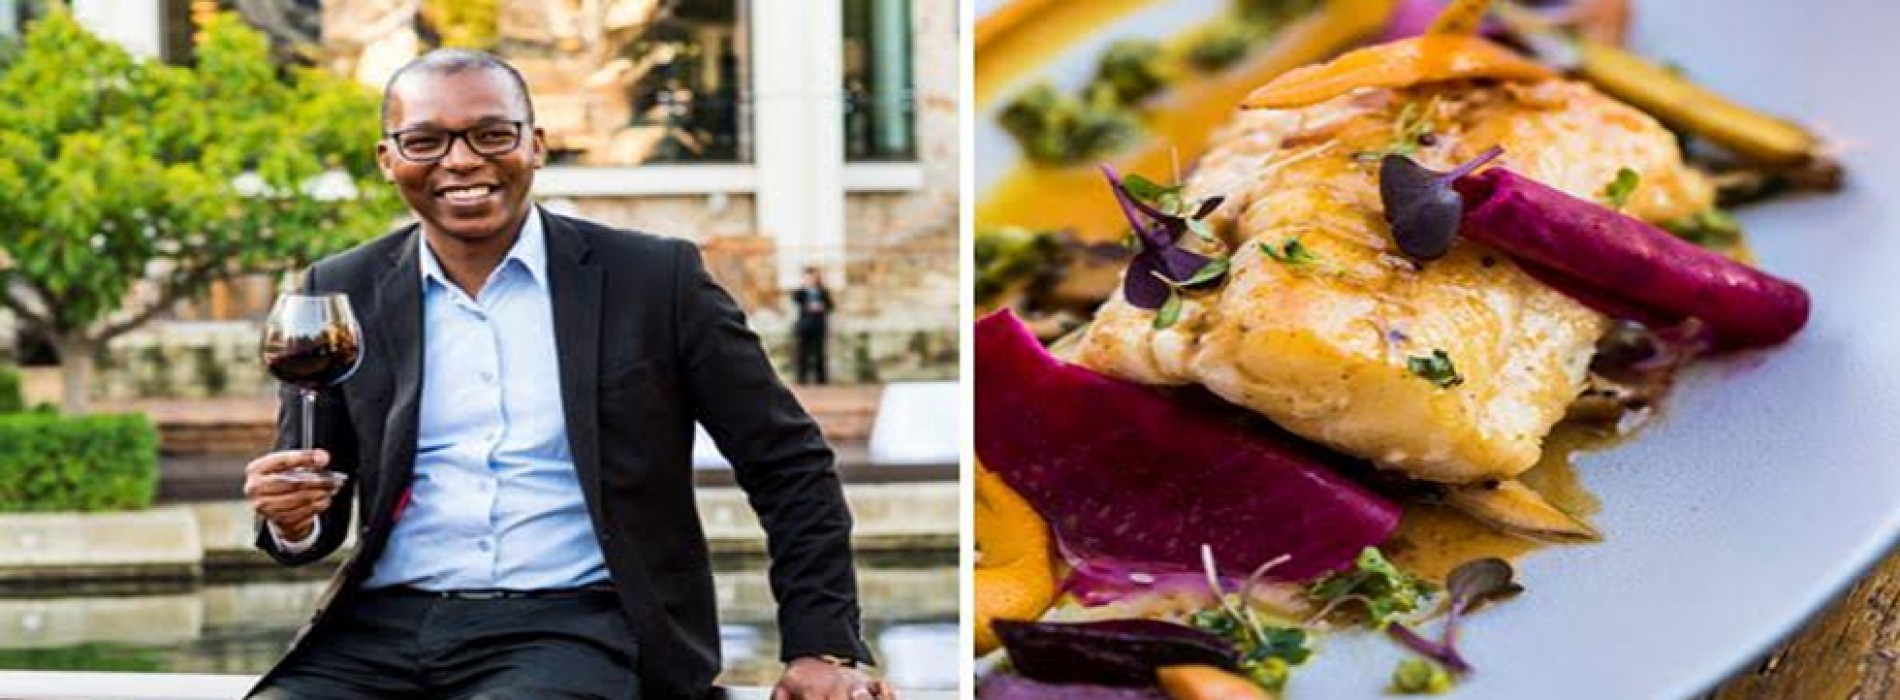 Reubens's at One&Only Cape Town introduces Chef & The Vine Dinners